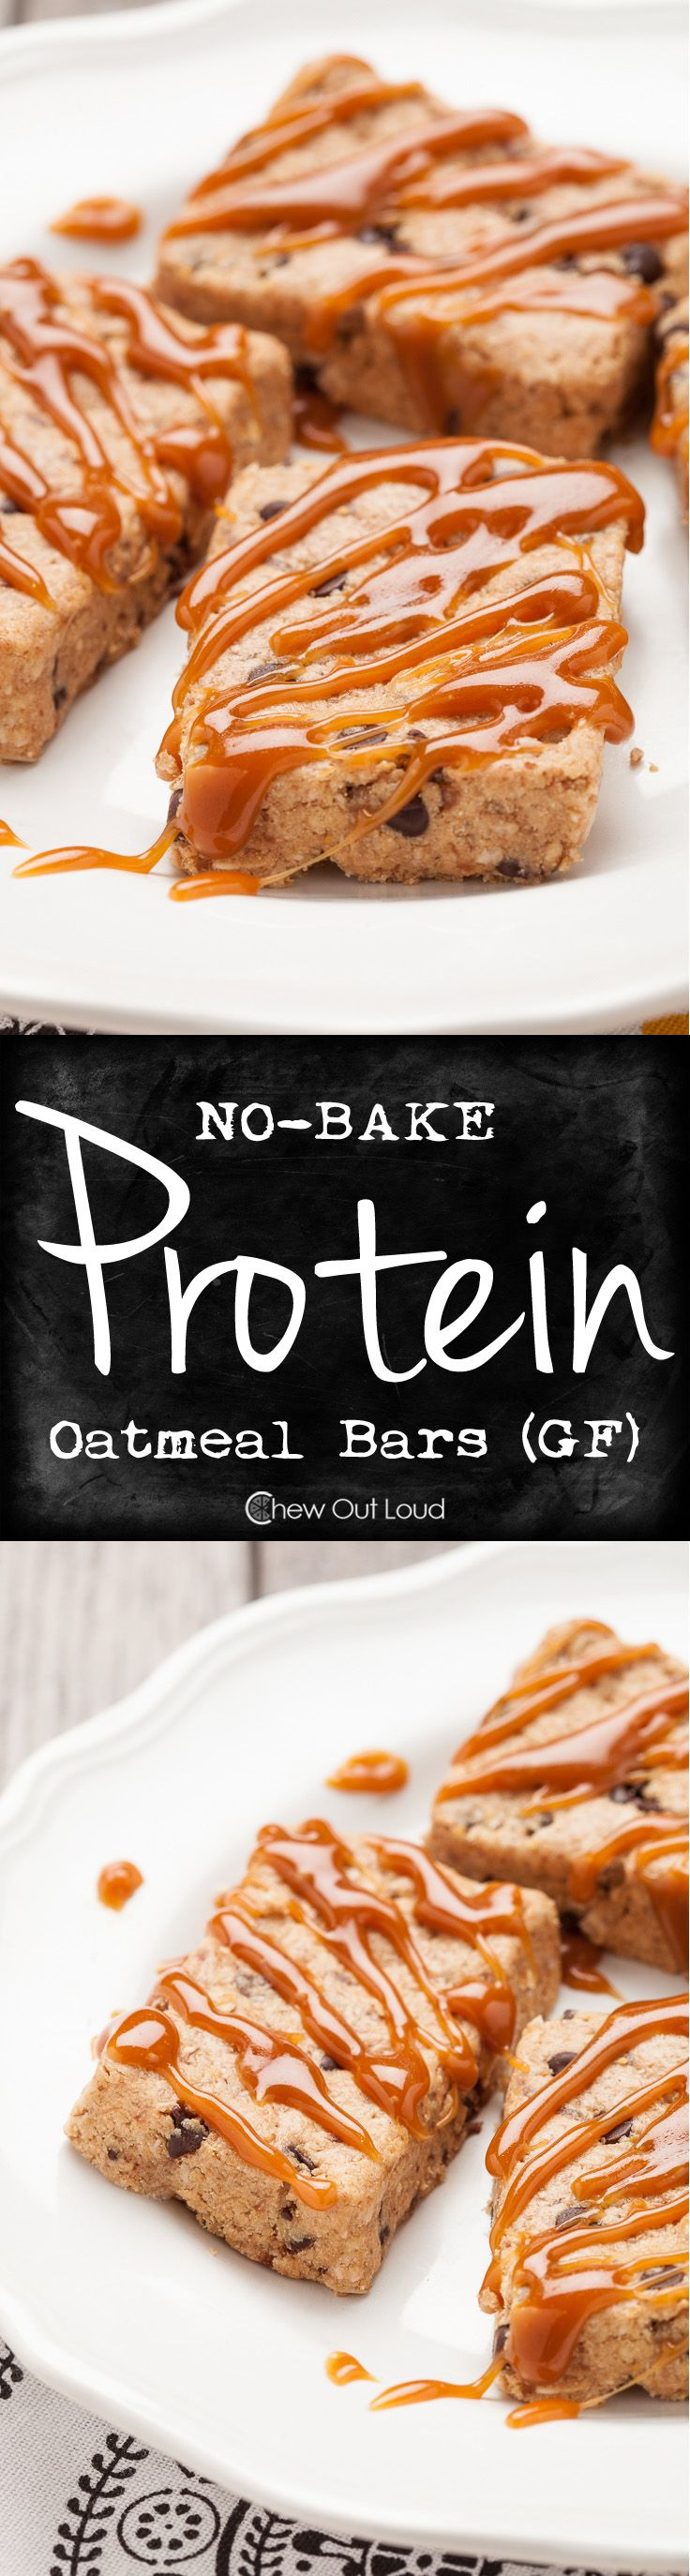 These No-Bake Oatmeal Protein Bars are chewy, soft, and better than store brands. You know exactly what goes in them. Way cheaper, too. #energy #recipe